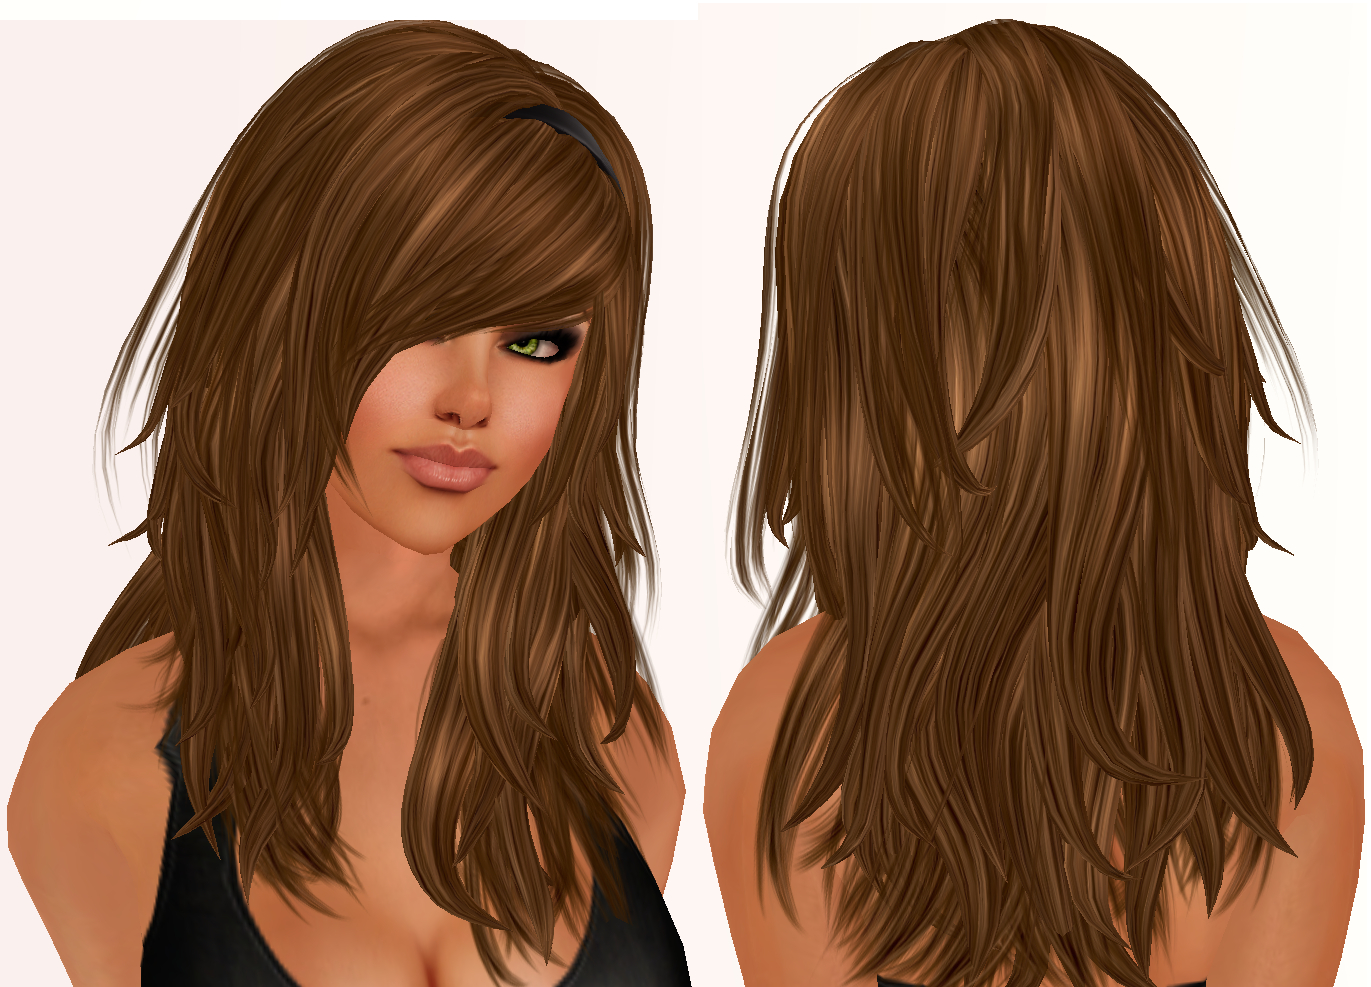 Cute Hairstyles For Medium Hair With Side Bangs And Layers Pertaining To 2017 Medium Hairstyles With Side Swept Bangs And Layers (View 17 of 20)